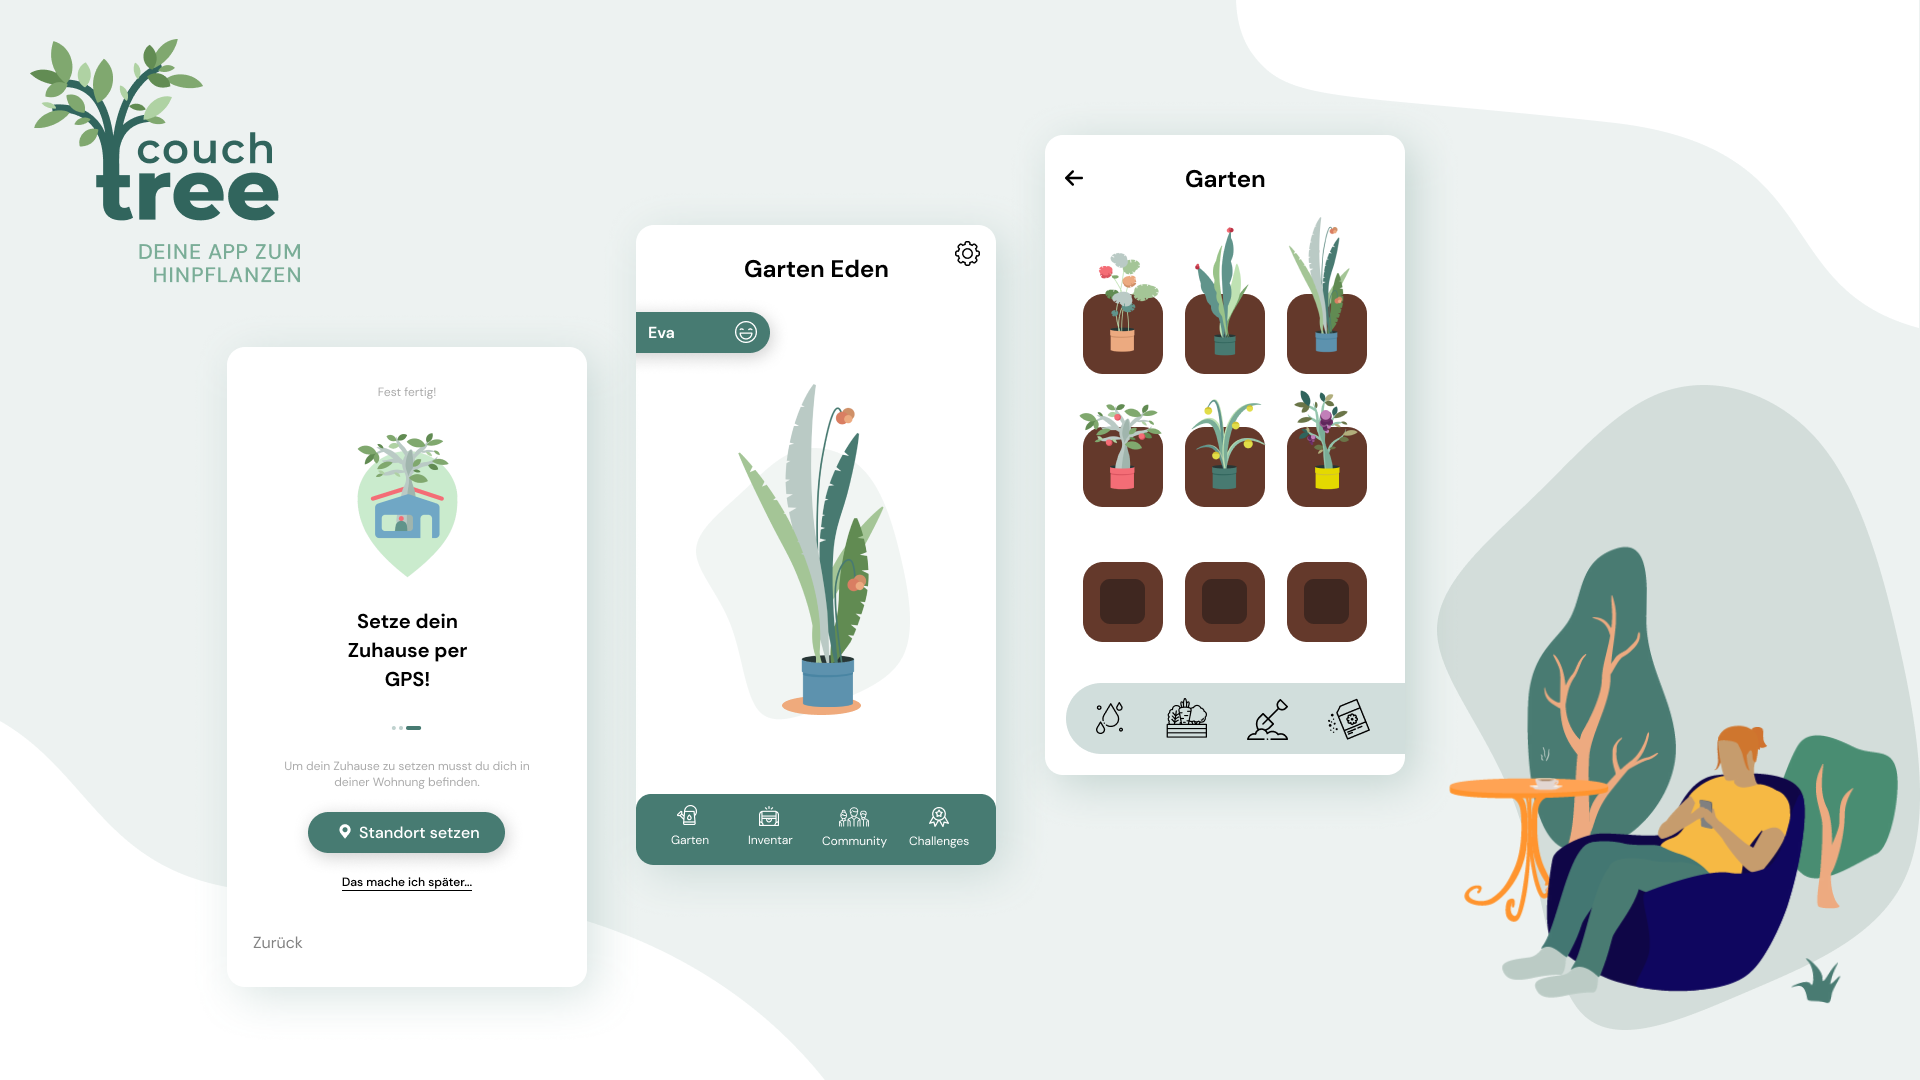 CouchTree, your app to plant at home